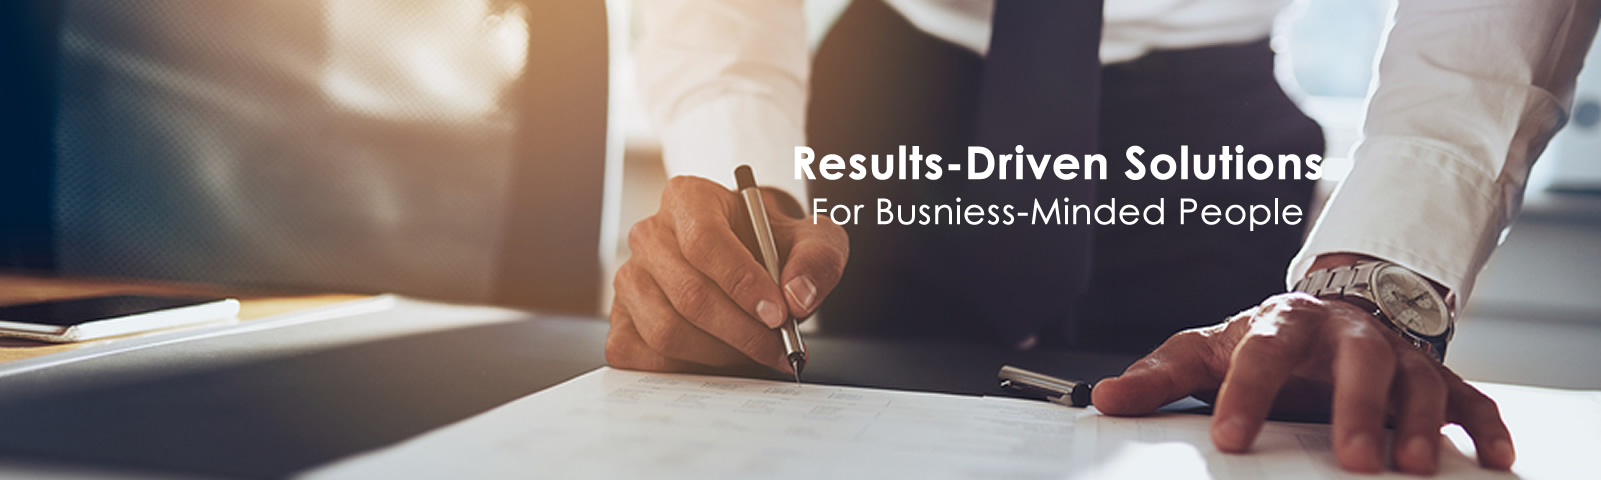 Result driven solutions